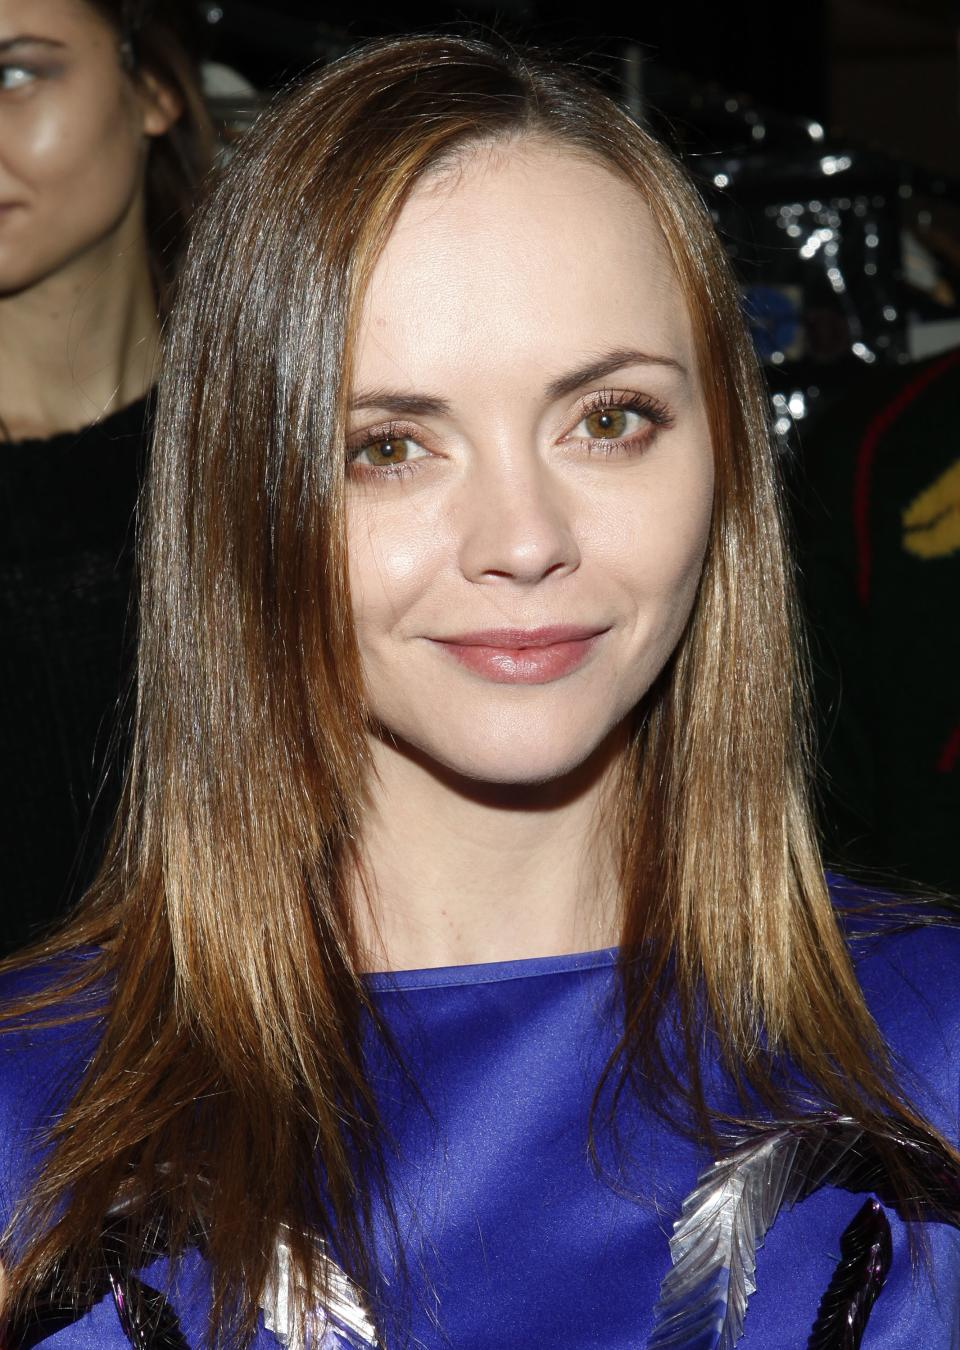 Actress Christina Ricci attends the Richard Chai Fall 2013 fashion show during Mercedes-Benz Fashion Week at The Stage at Lincoln Center on Thursday, Feb. 7, 2013 in New York. (Photo by Amy Sussman/Invision/AP)